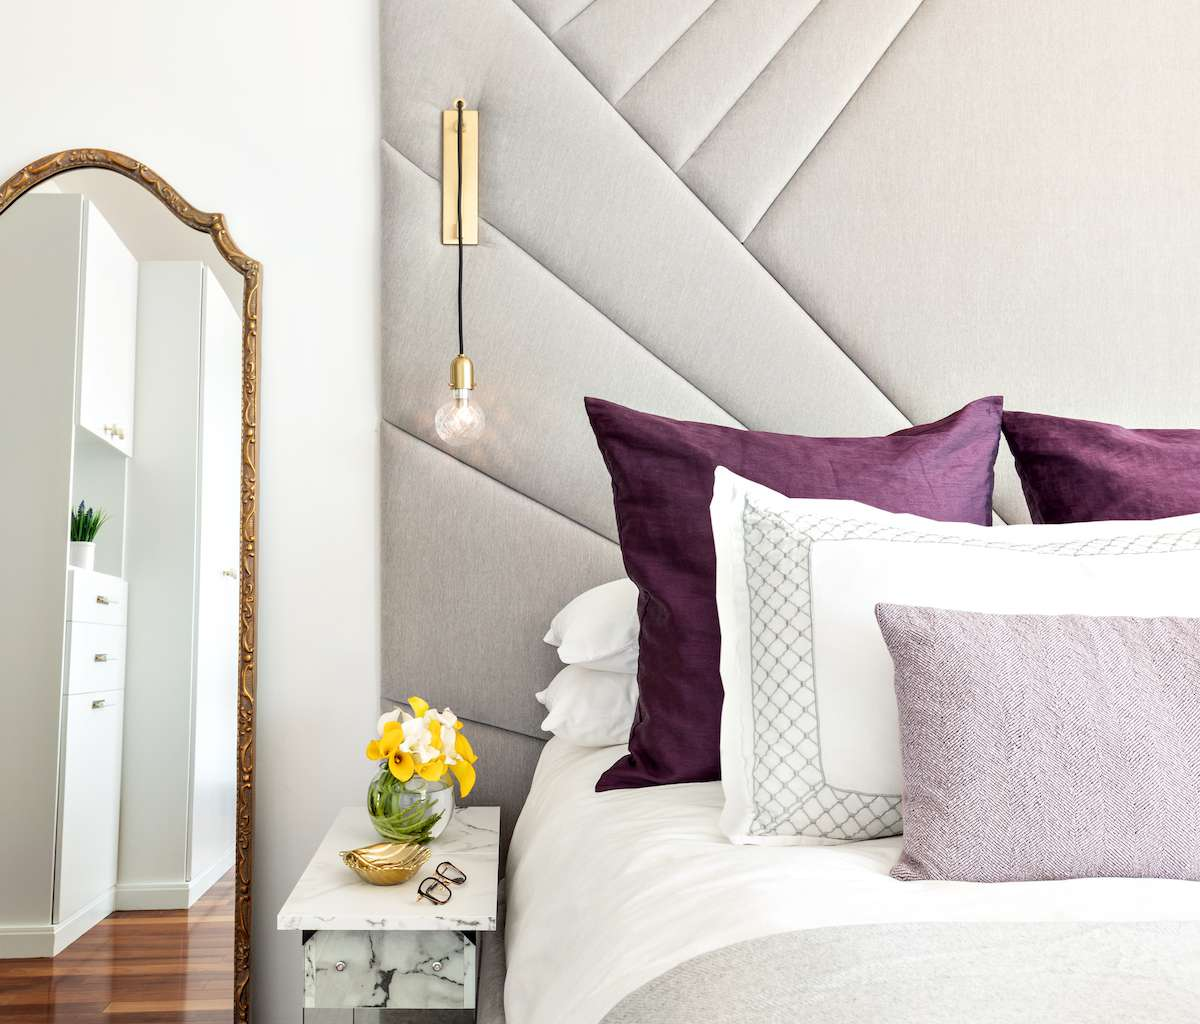 Bed with purple pillows